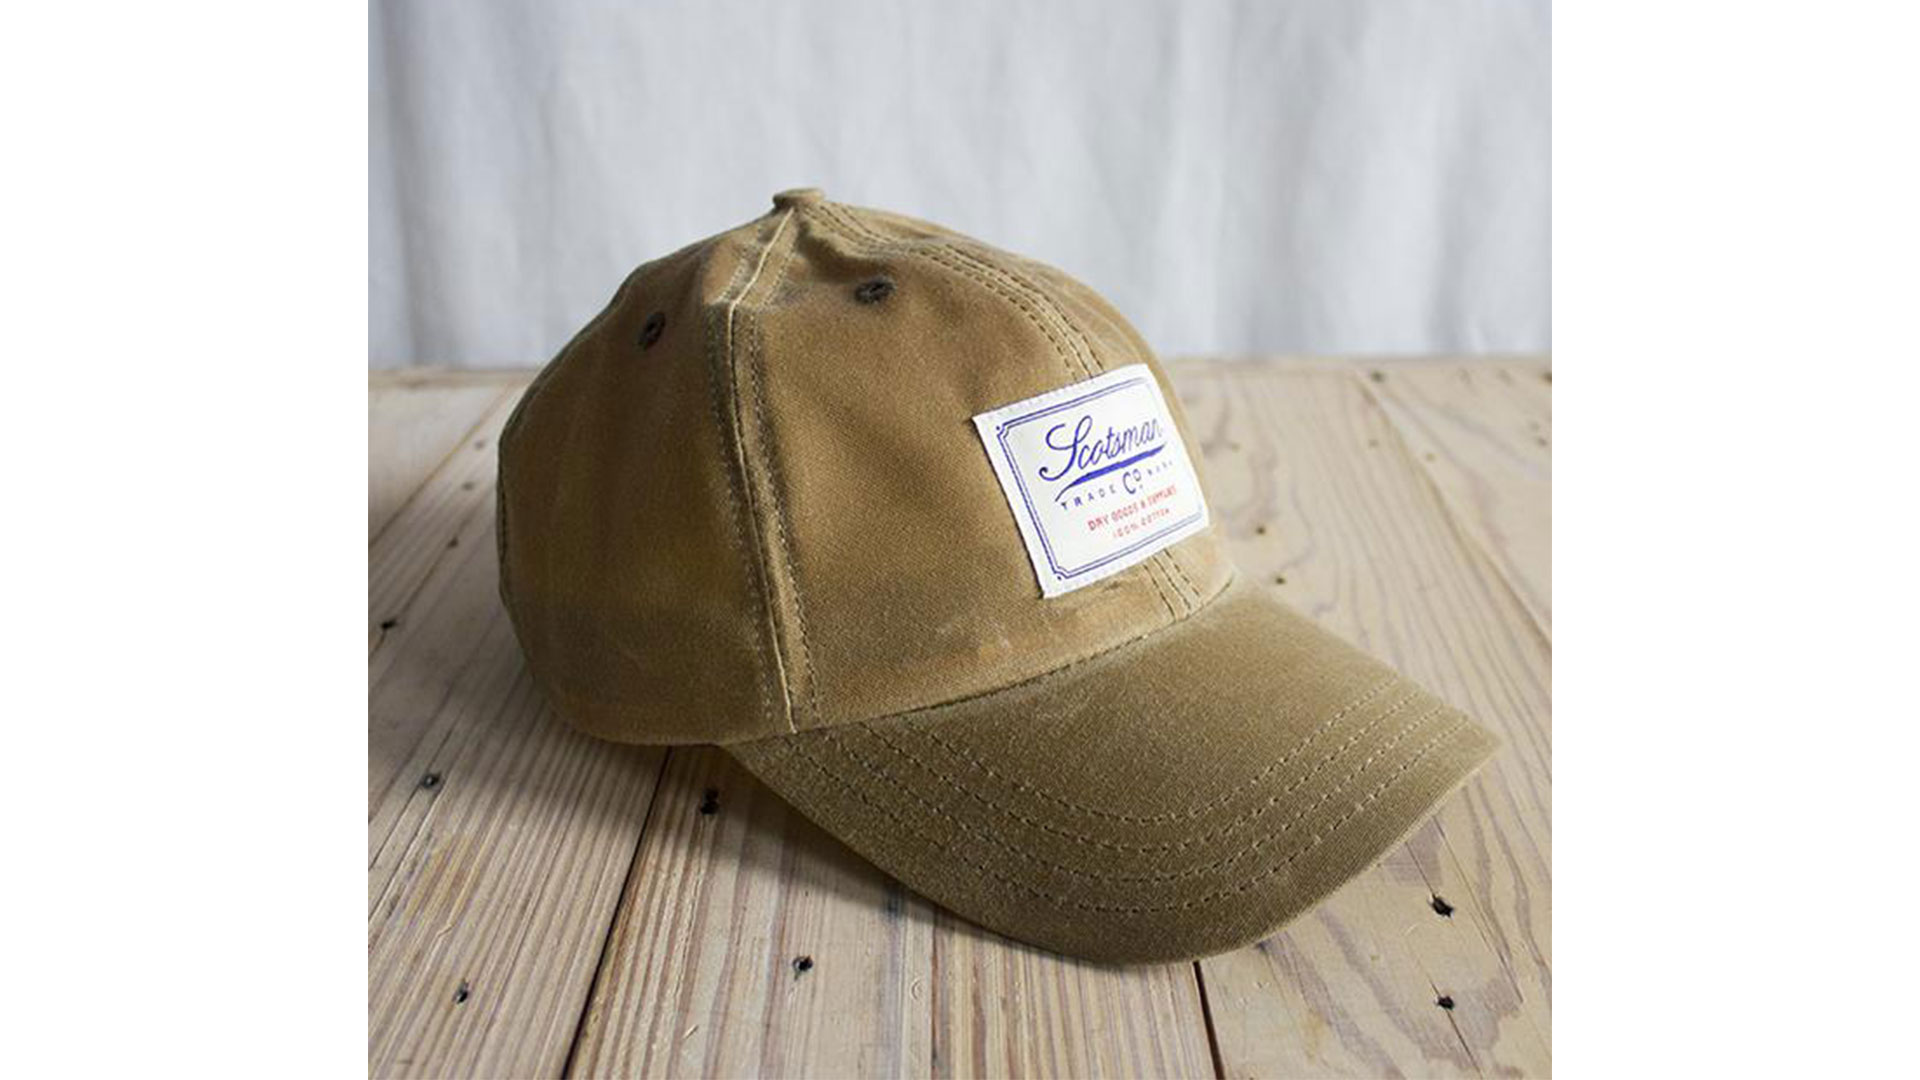 Erin and Ben Napier American Products Hat